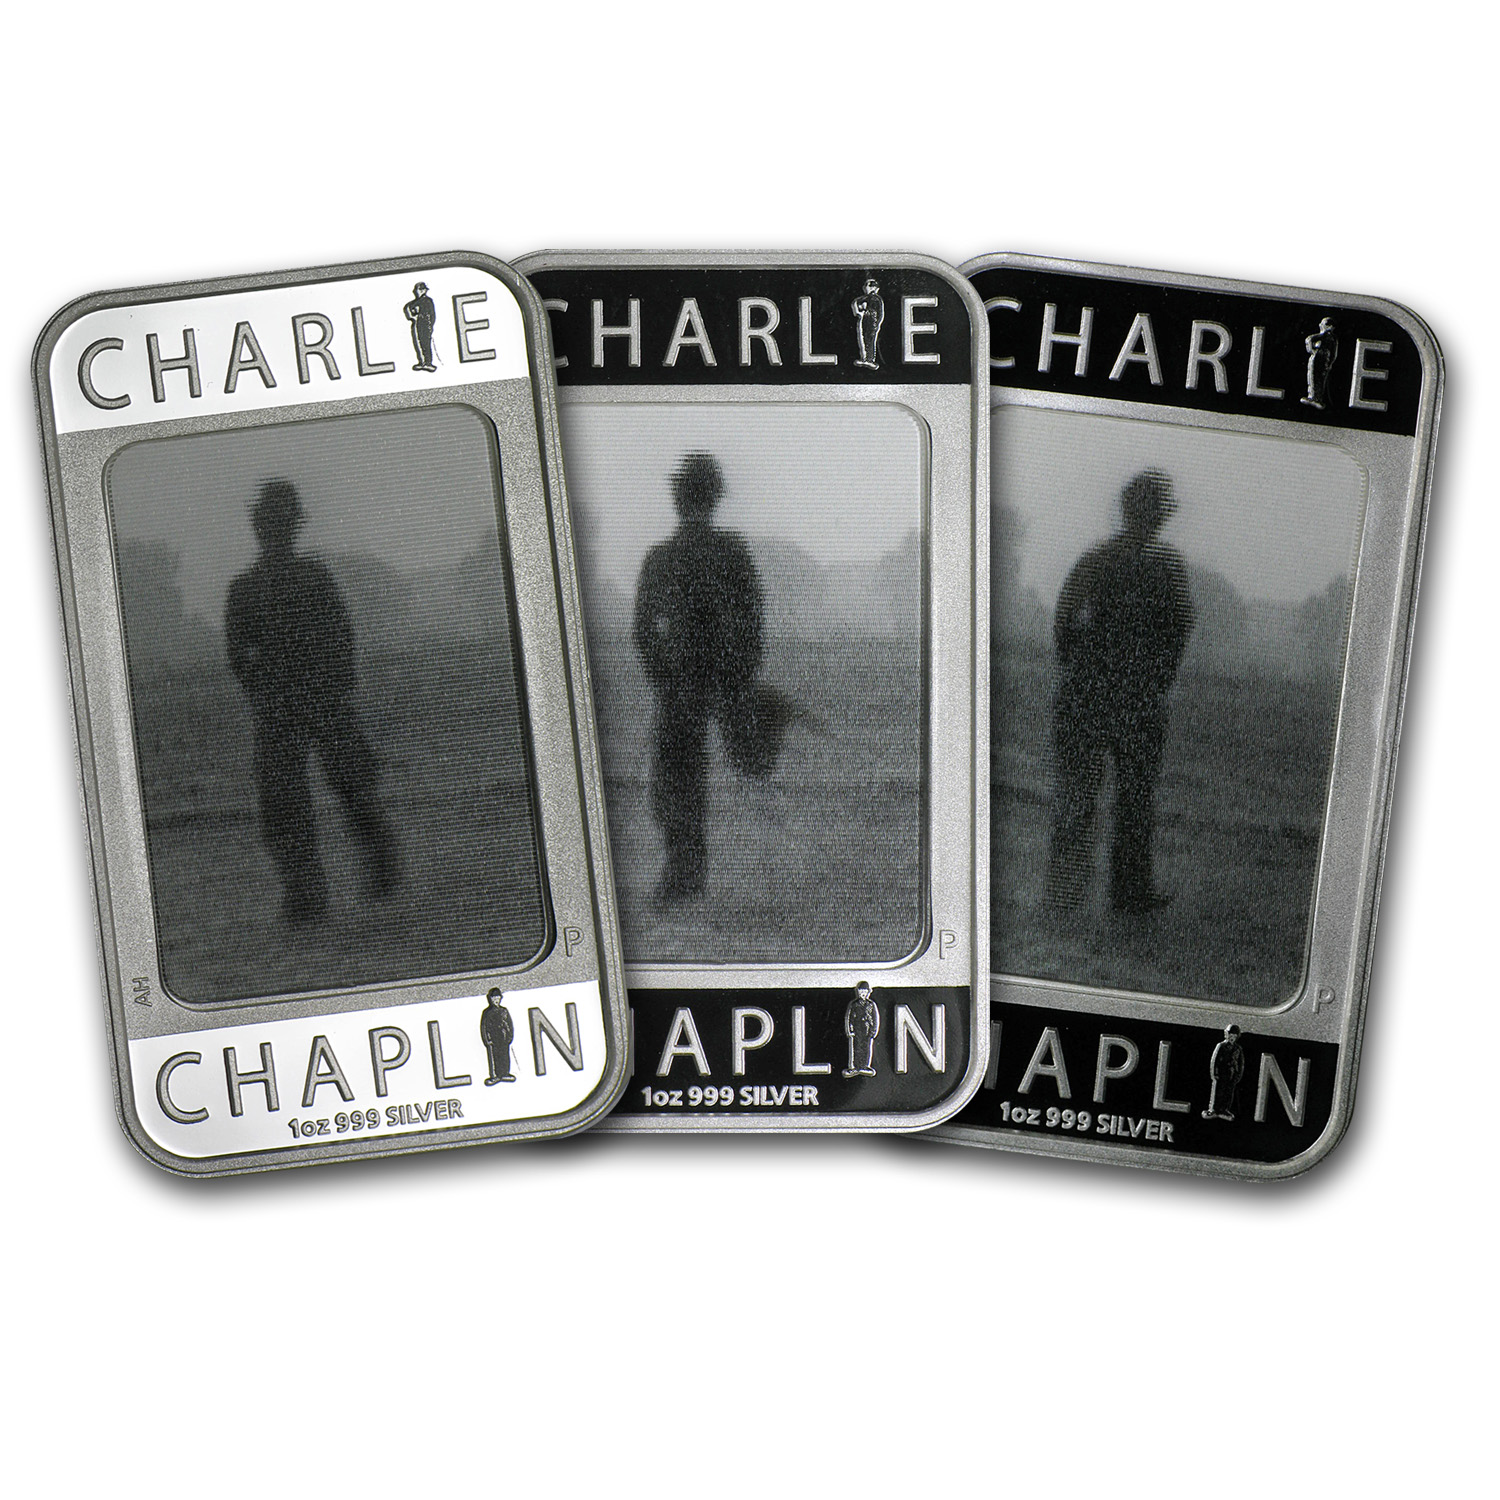 2014 1 oz Silver Bar - Charlie Chaplin Pf (100 Years of Laughter)